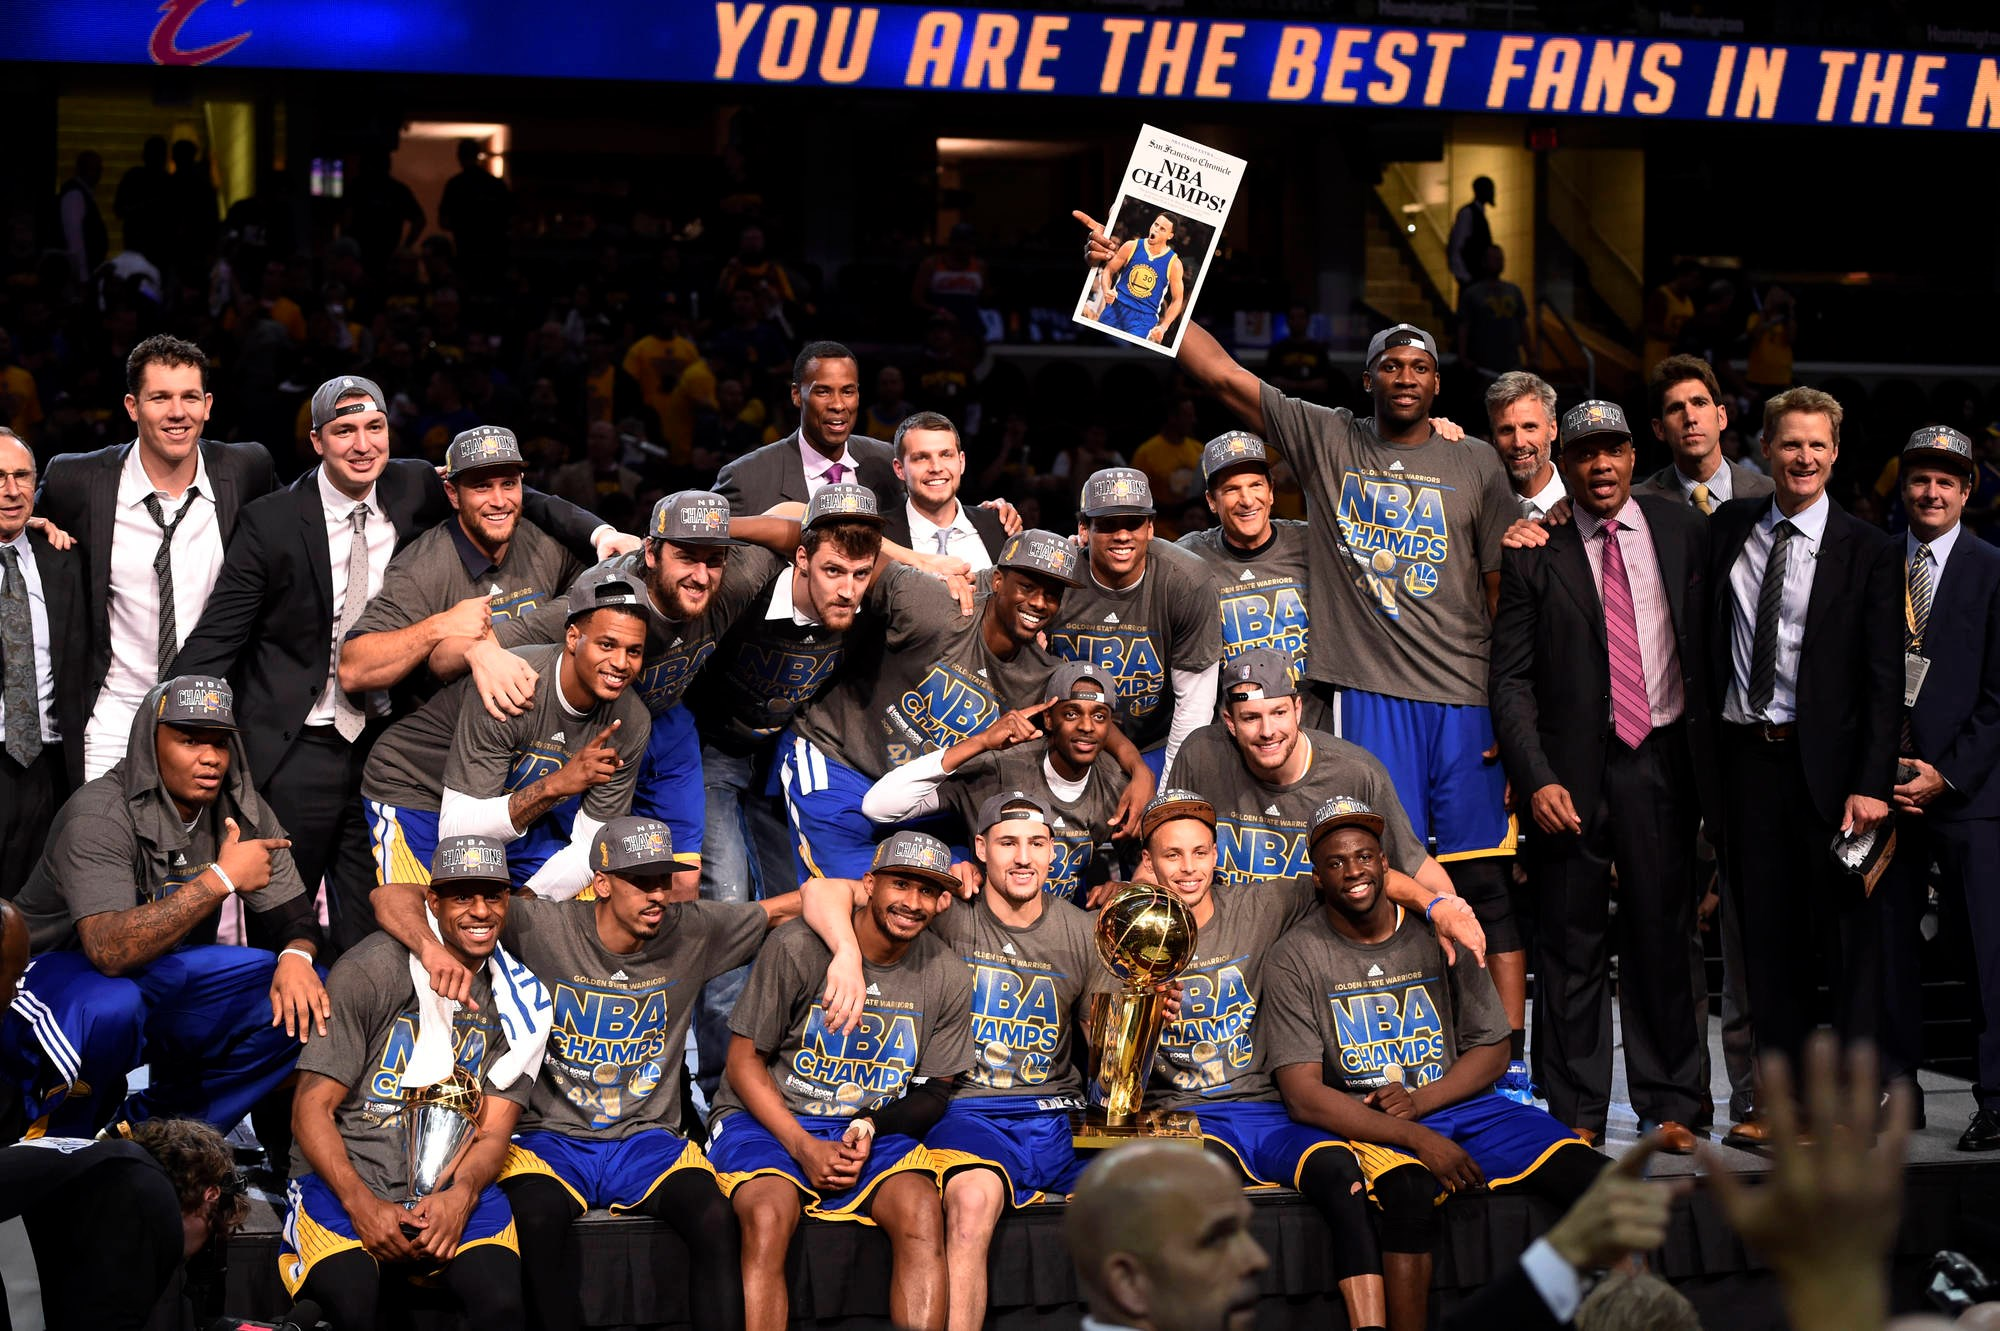 golden-state-warriors-hd-1080p-high-quality-wallpaper-wp3805979